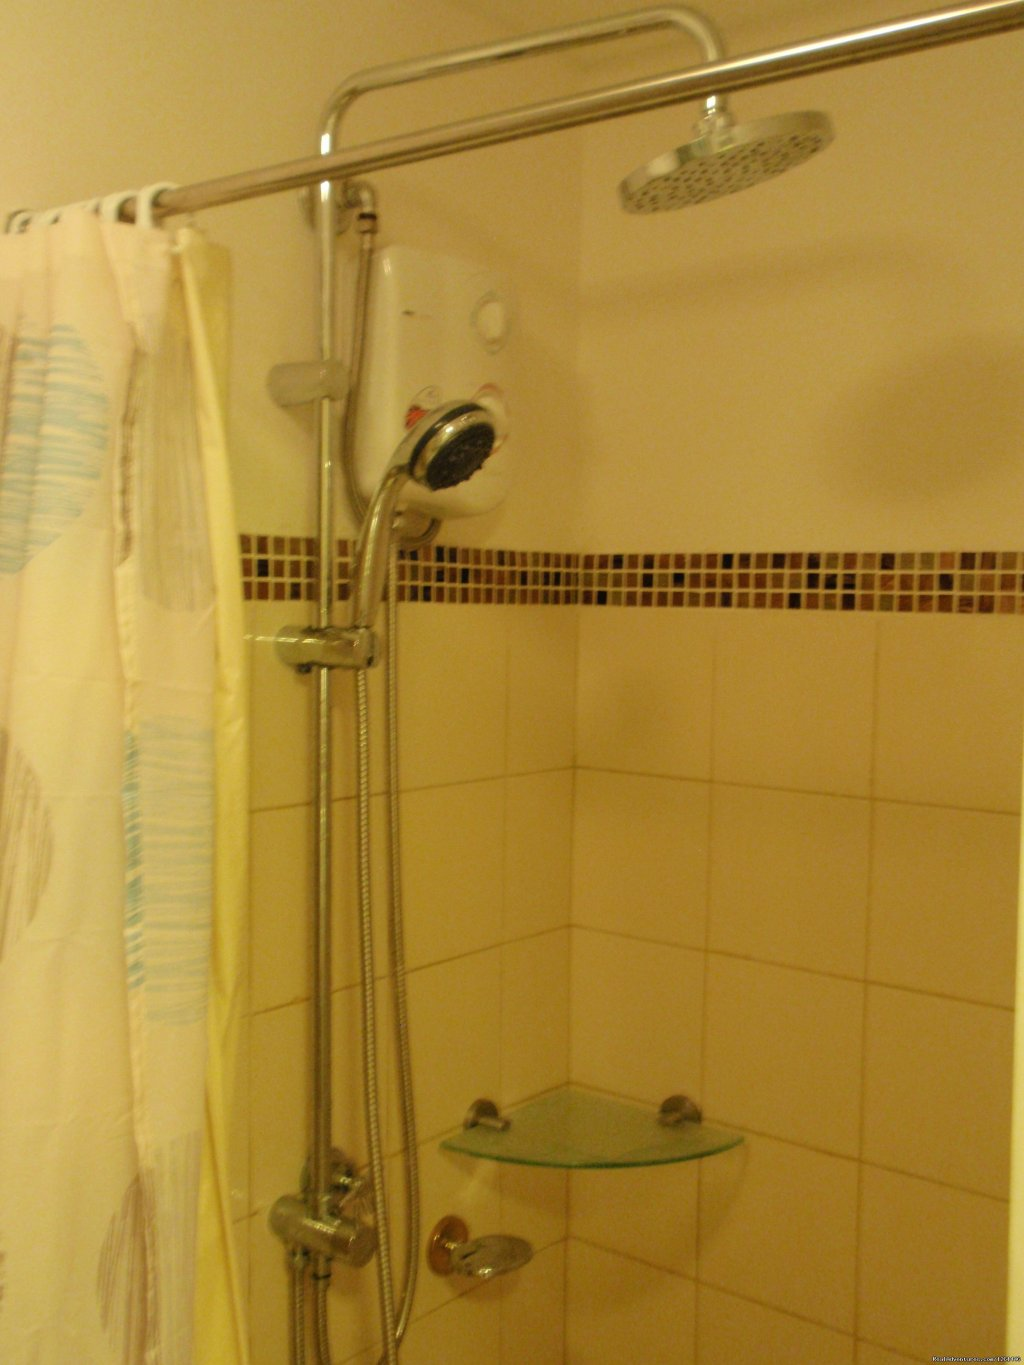 30th Floor Unit Bathroom-shower Room | Image #26/26 | Fully Furnished Studio-Condo Unit in Manila